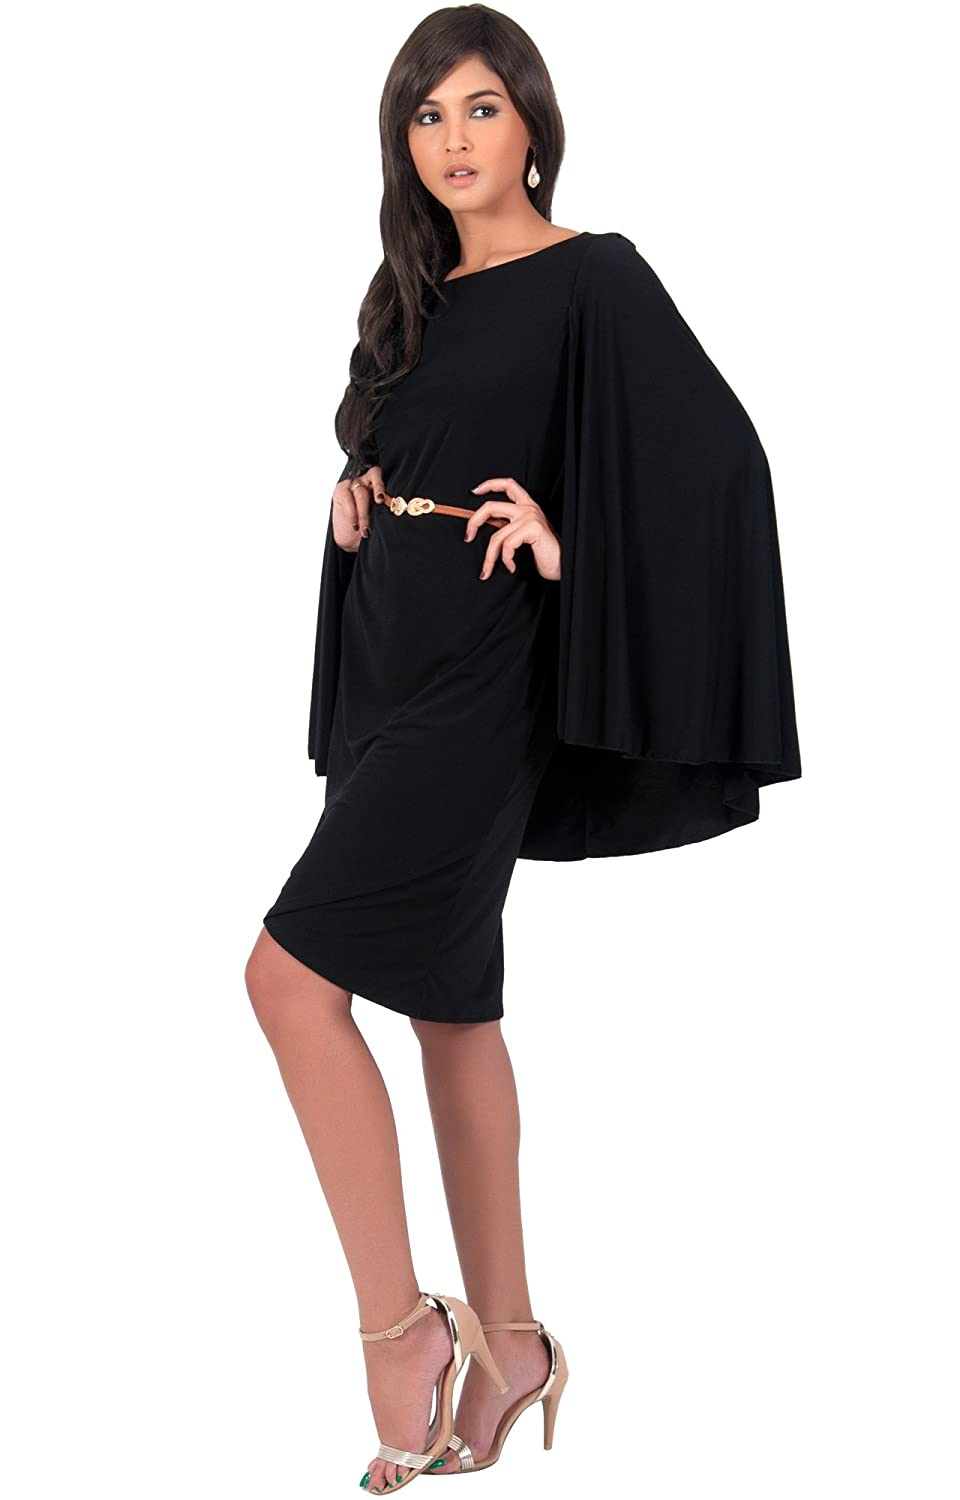 KOH KOH Womens Cape Long Sleeve Round Neck Cocktail with Leather ...